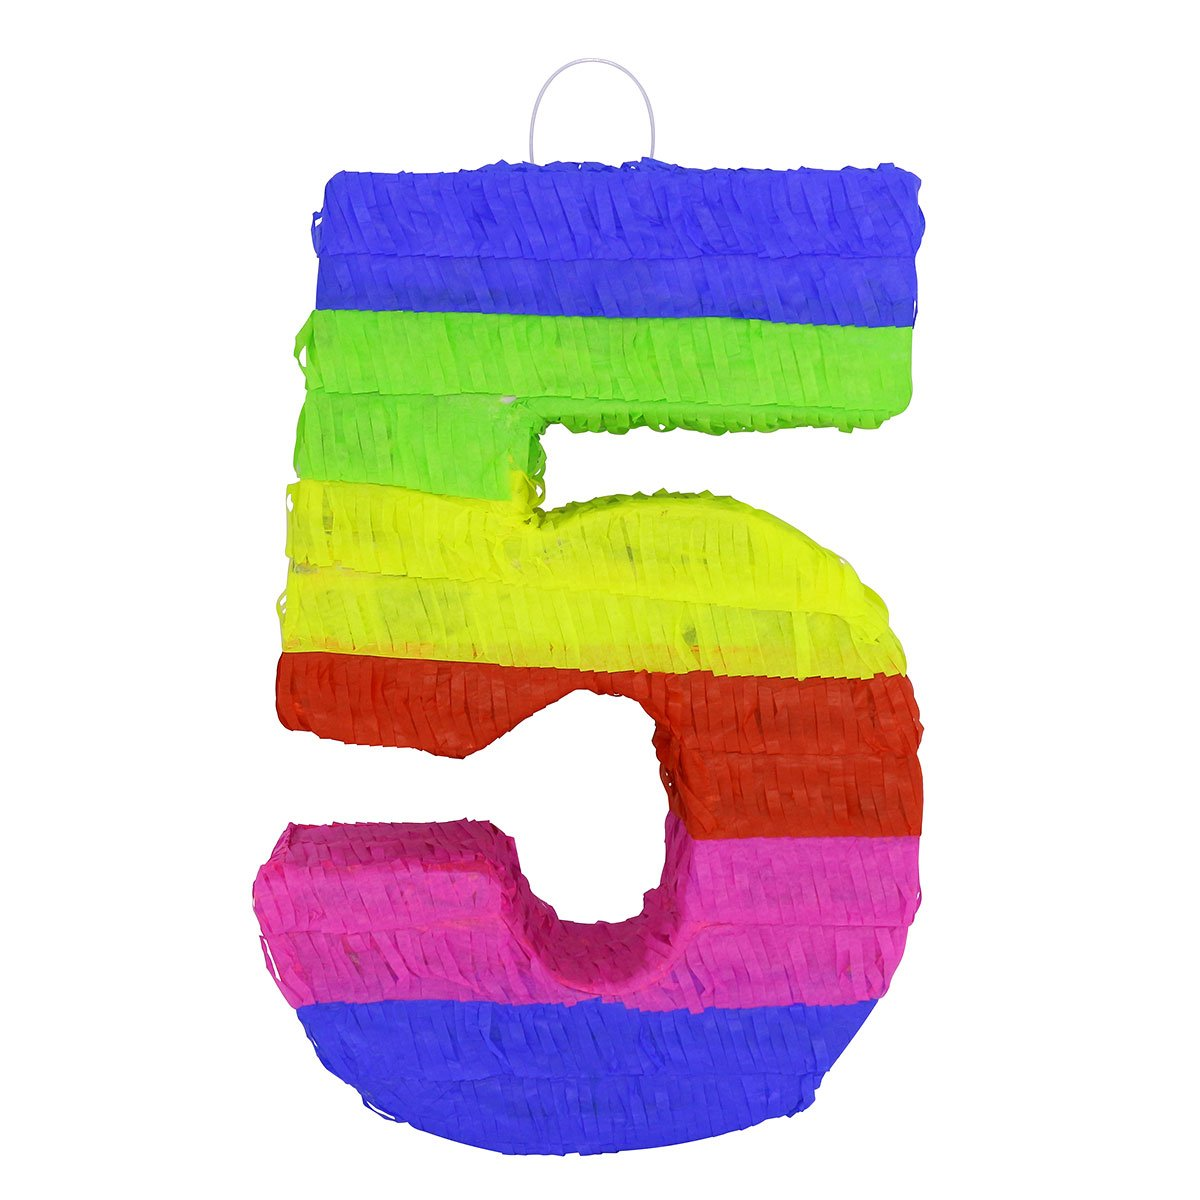 LYTIO - Multicolor Paper 3D Number Five Pinata (Piñata) – Great for Any Party, Décor, Photo Prop.